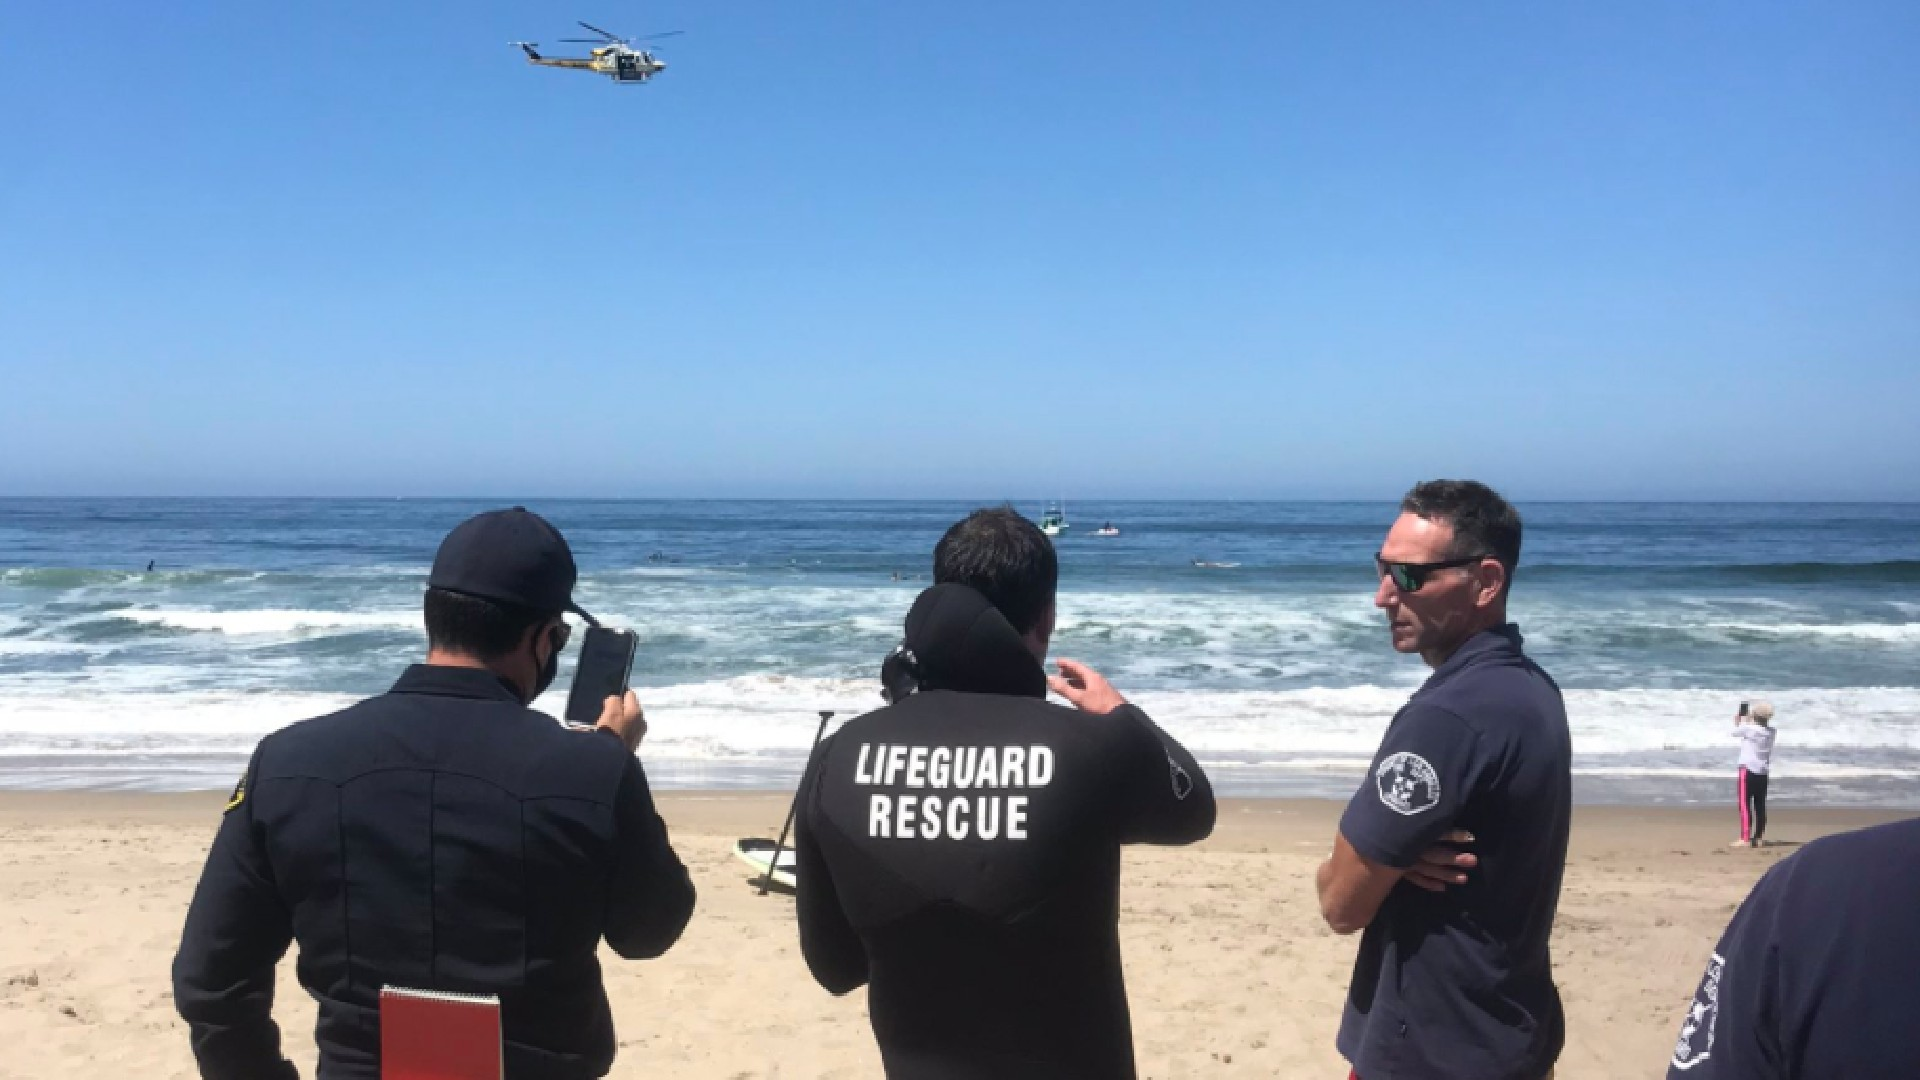 A search was underway for a missing swimmer off the coast of Manhattan Beach on May 21, 2020. (Los Angeles County Fire Department Lifeguards Division)